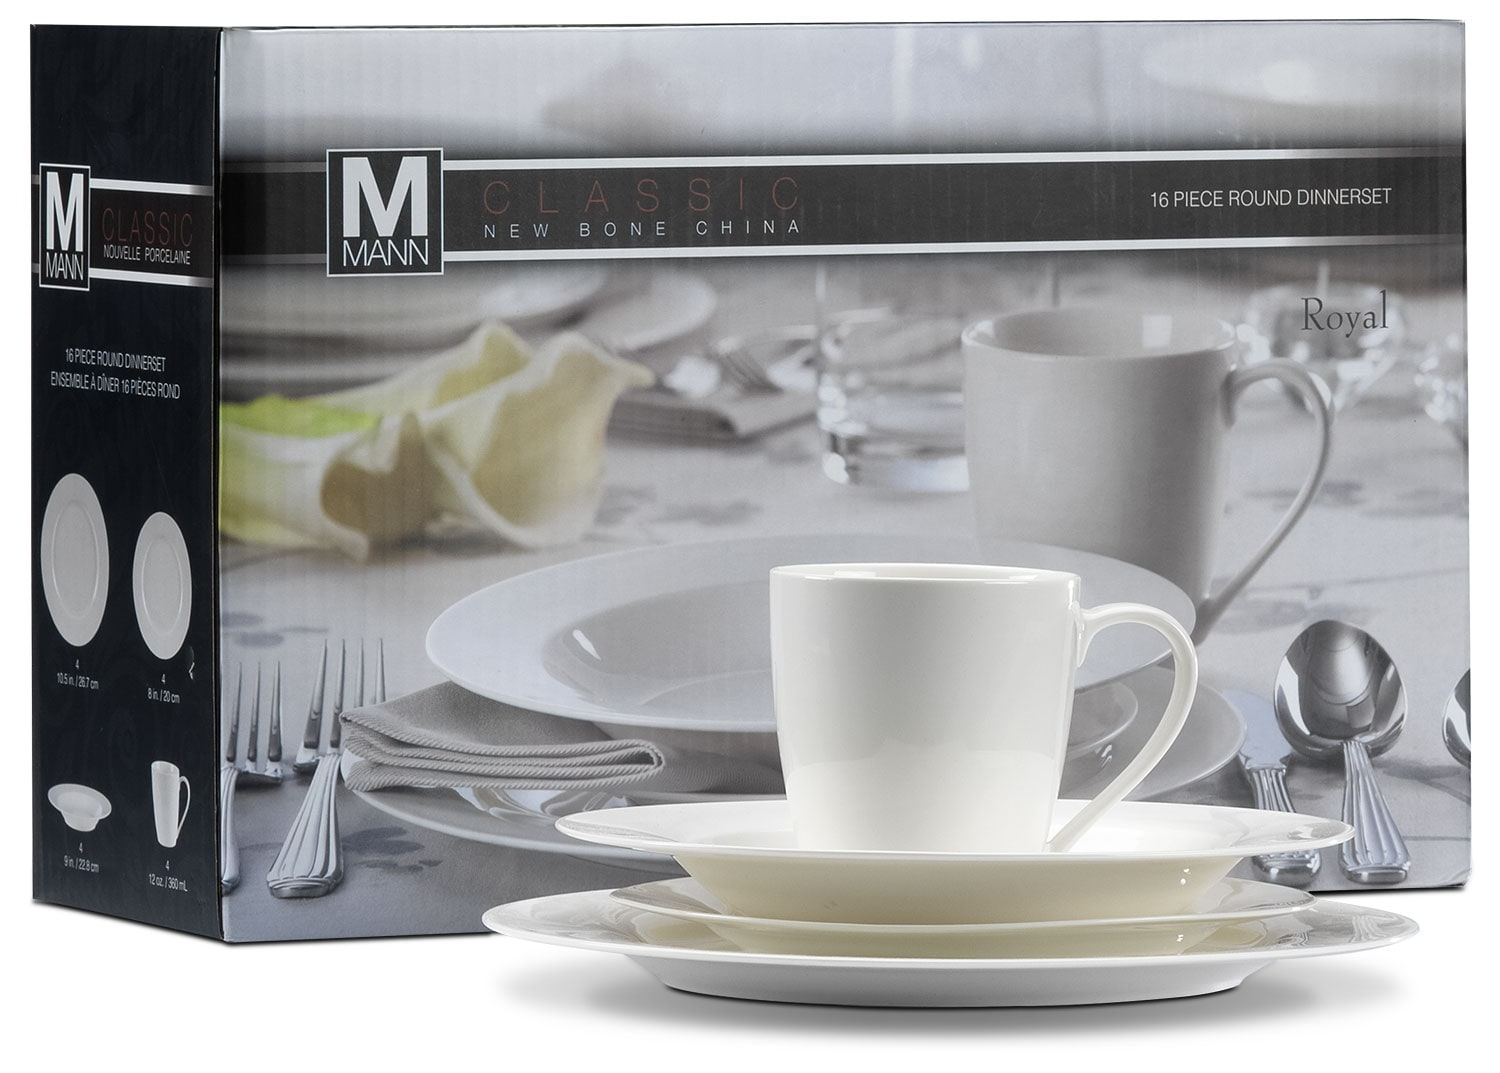 Citoli 16-Piece New Bone China Set